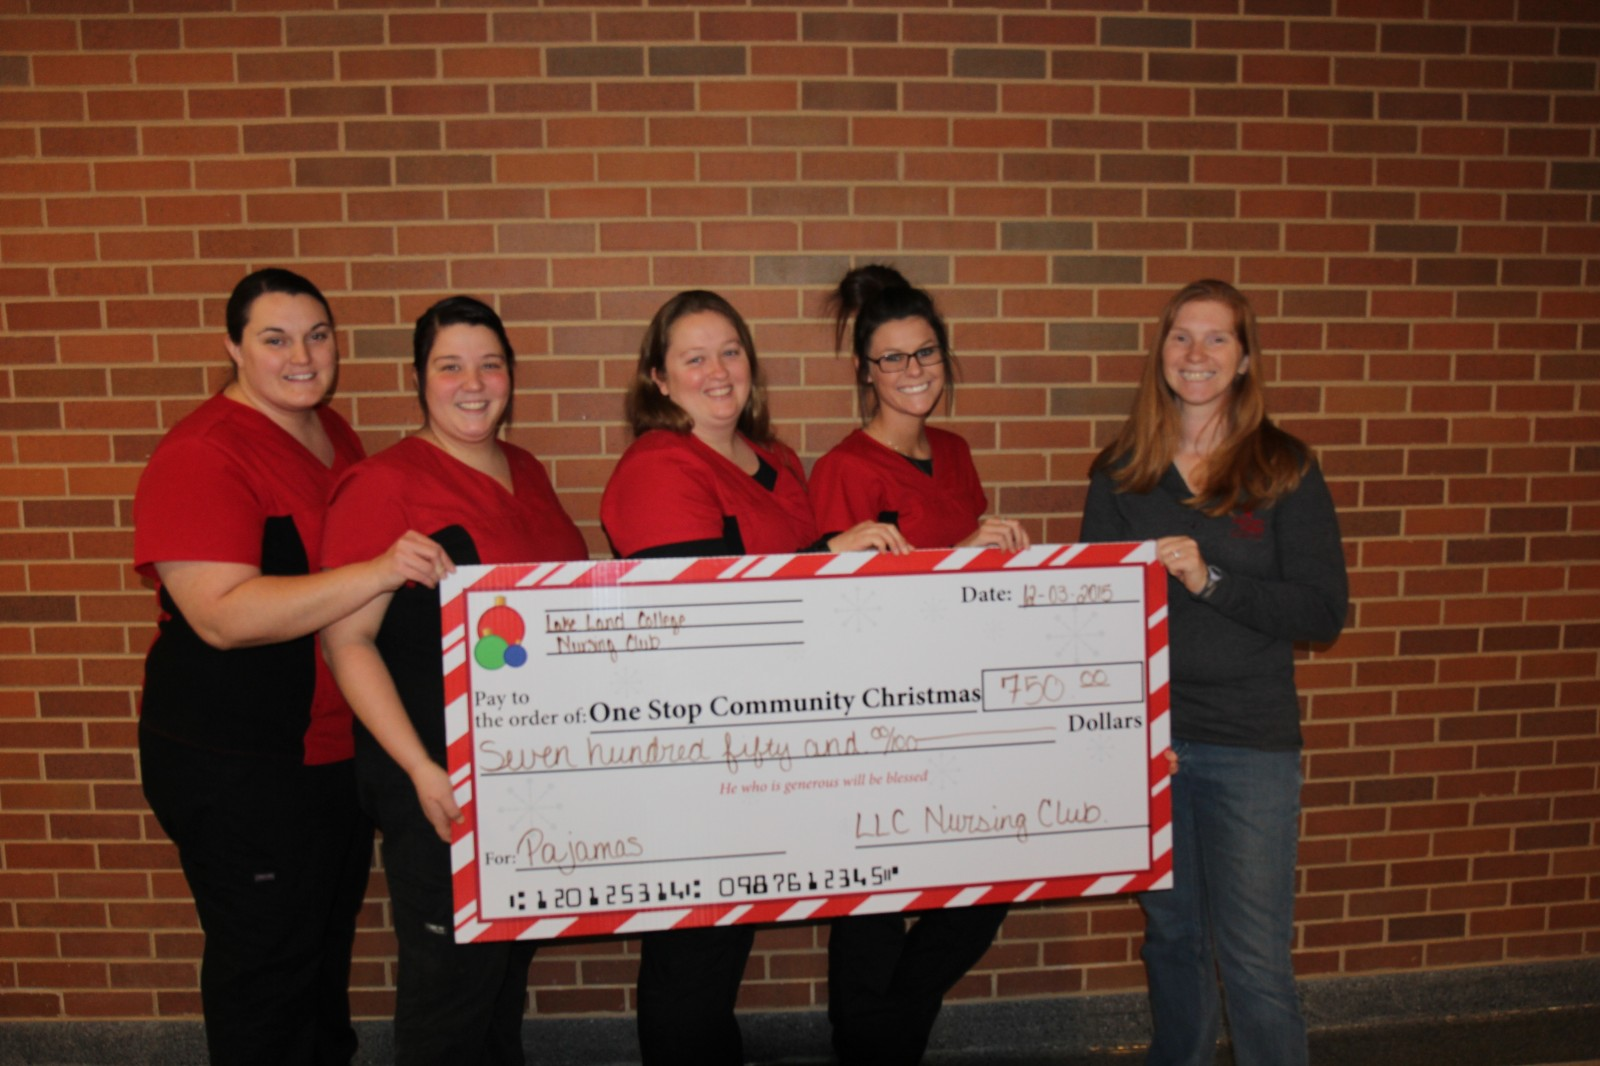 Lake Land College Nursing Club makes a donation to One Stop Community Christmas